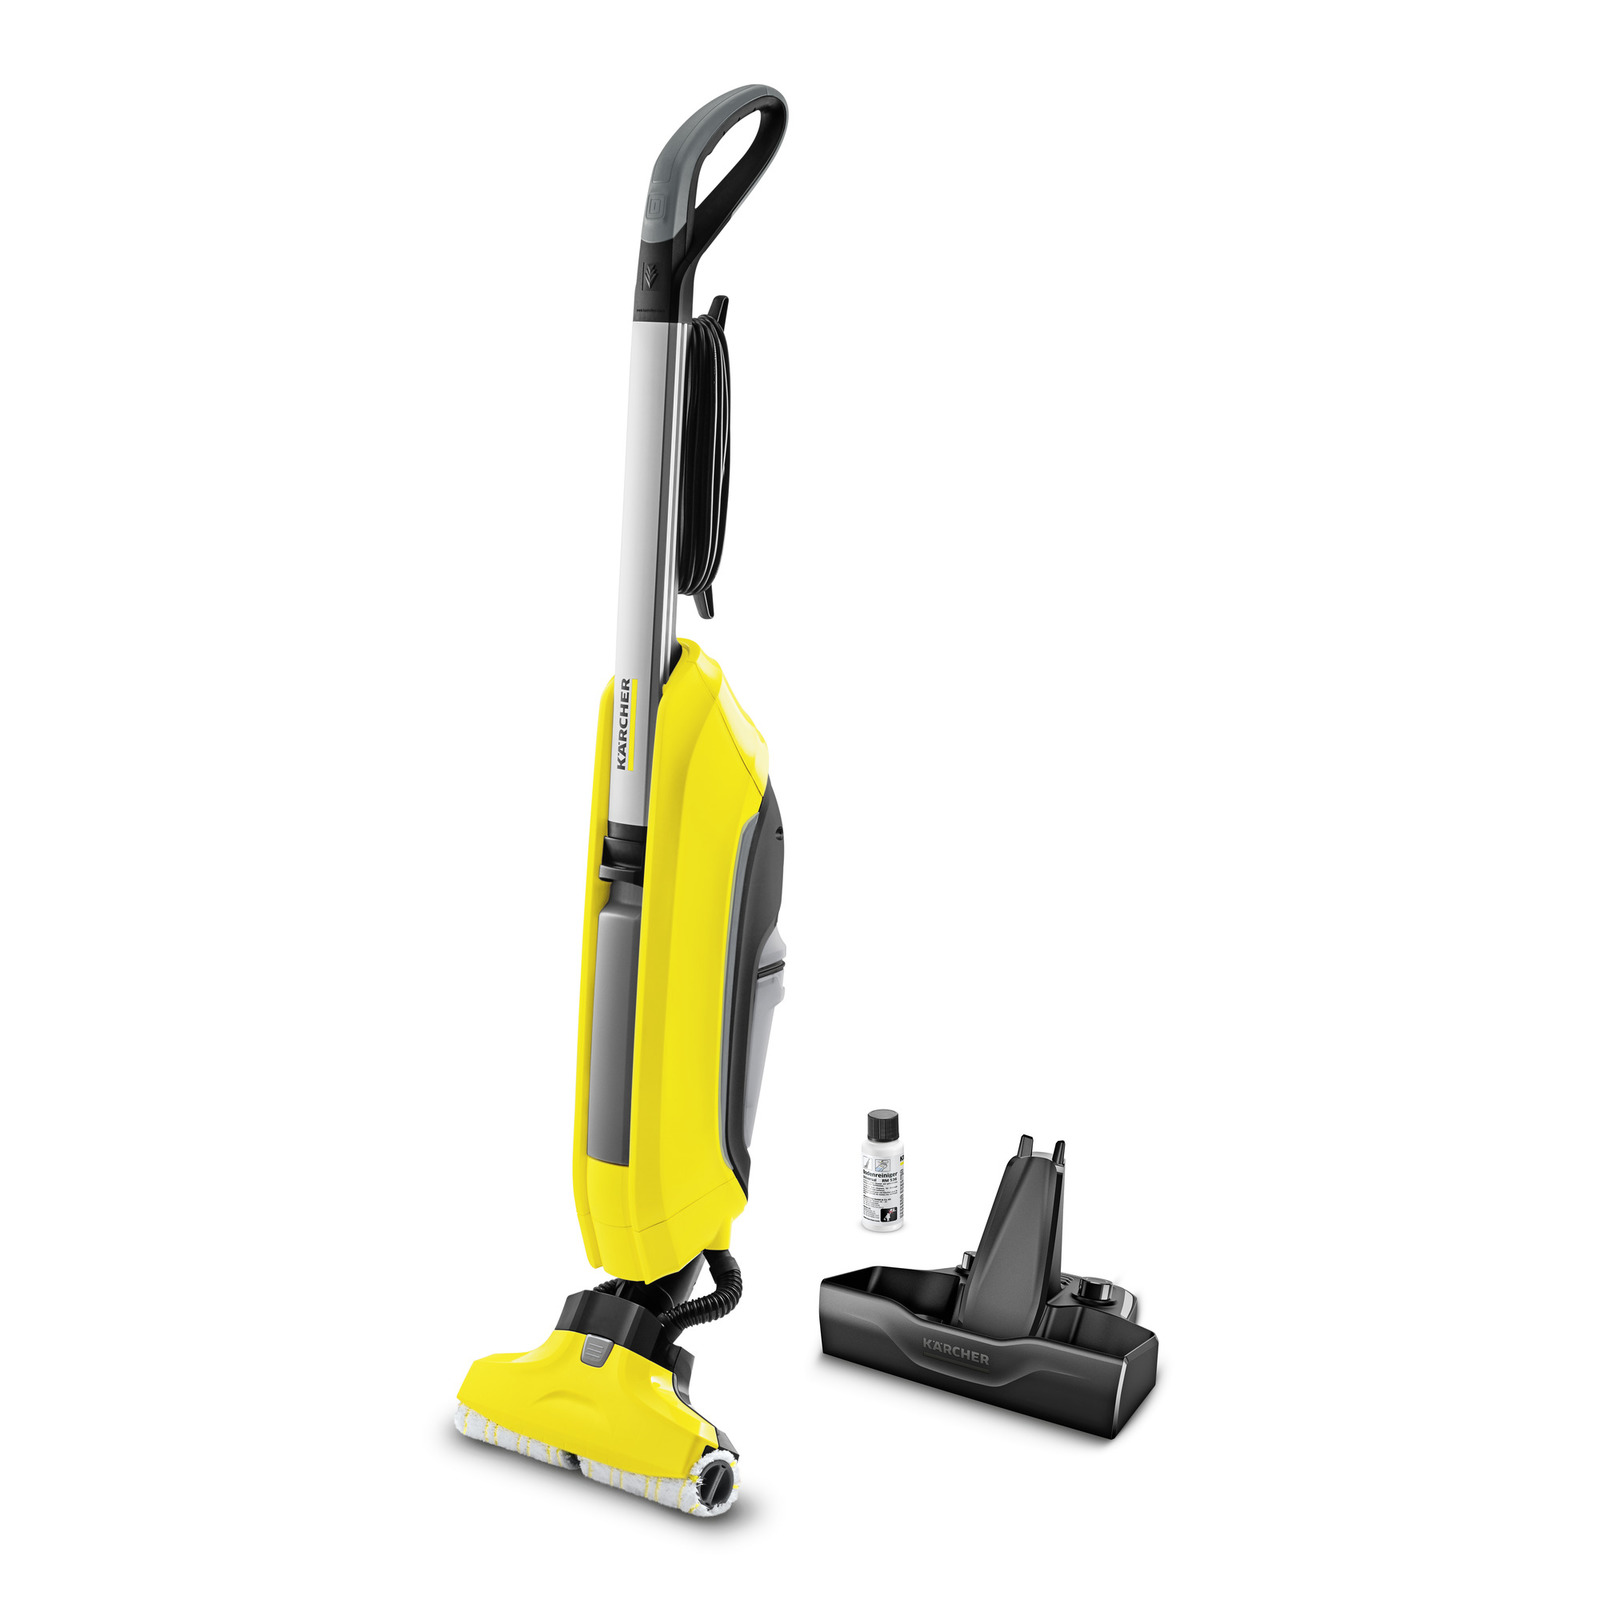 Roller Set for Karcher Wet /& Dry FC3 Hard Floor